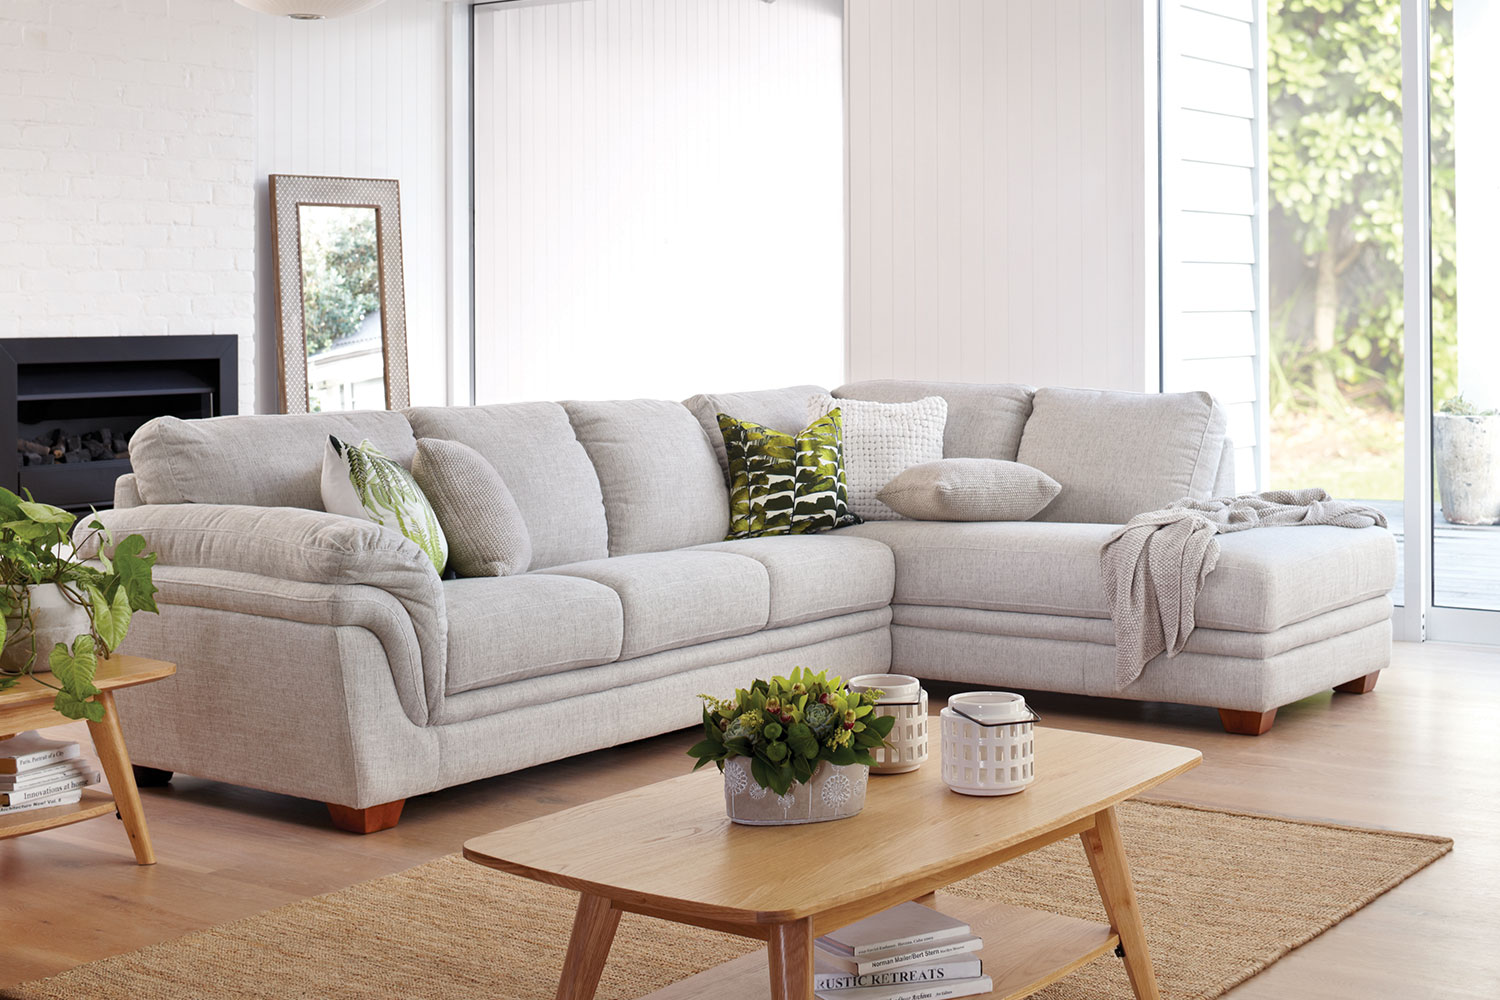 Harvey Norman Grey Fabric Sofa Demi 3 Seater Fabric Lounge With Chaise By La-z-boy